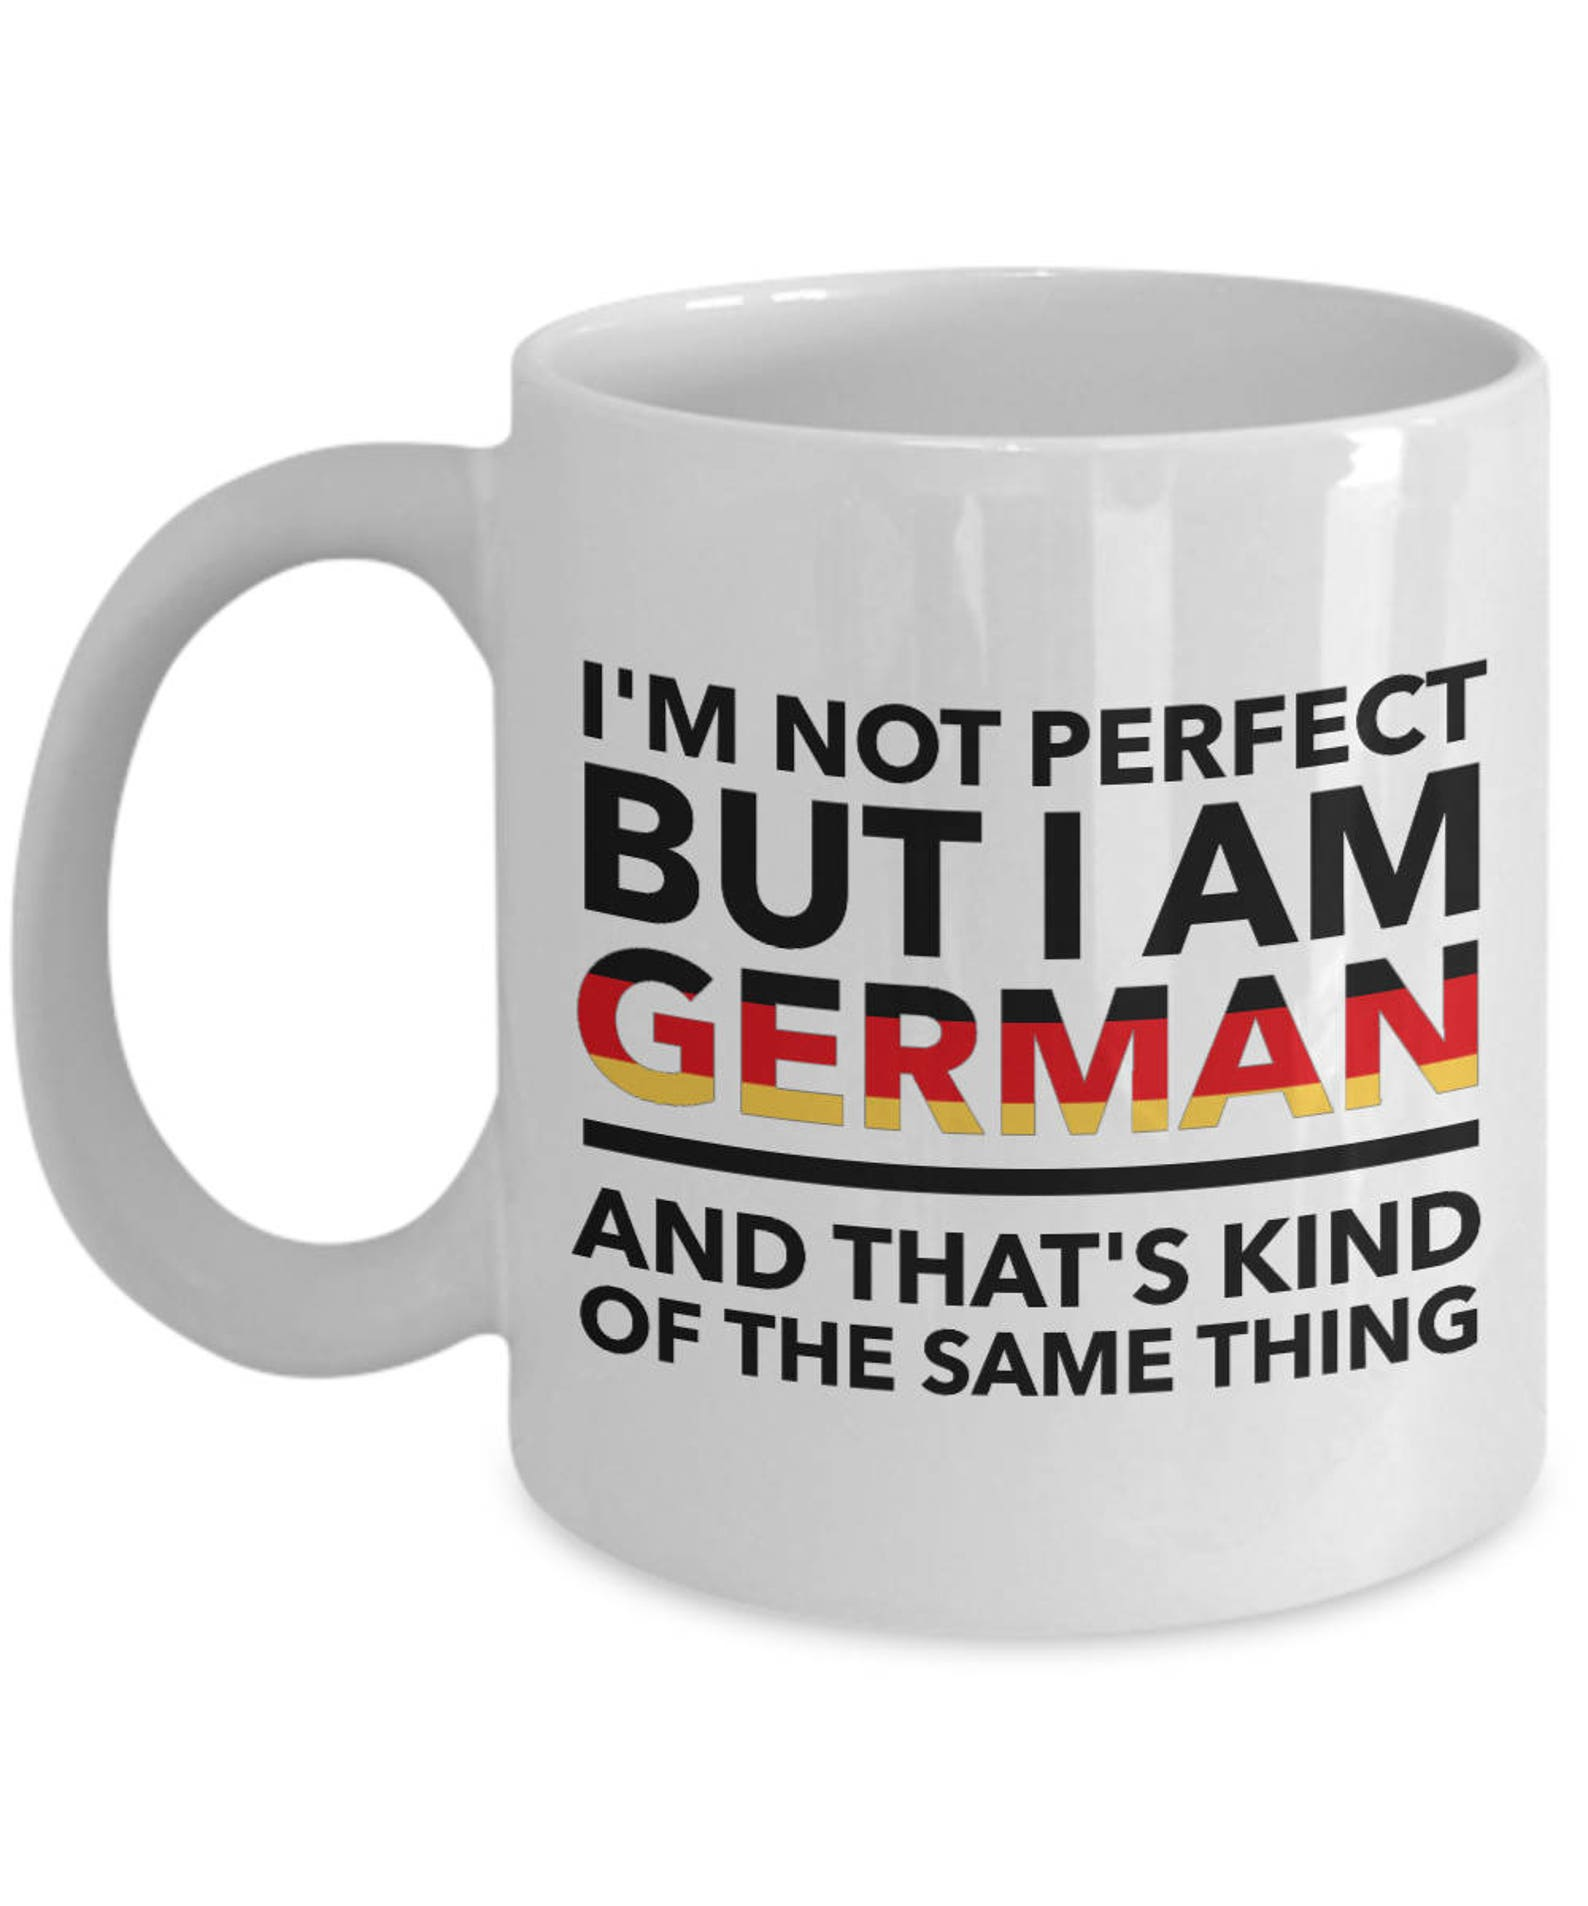 I'm not perfect but I am German and that's kind of the same thing mug